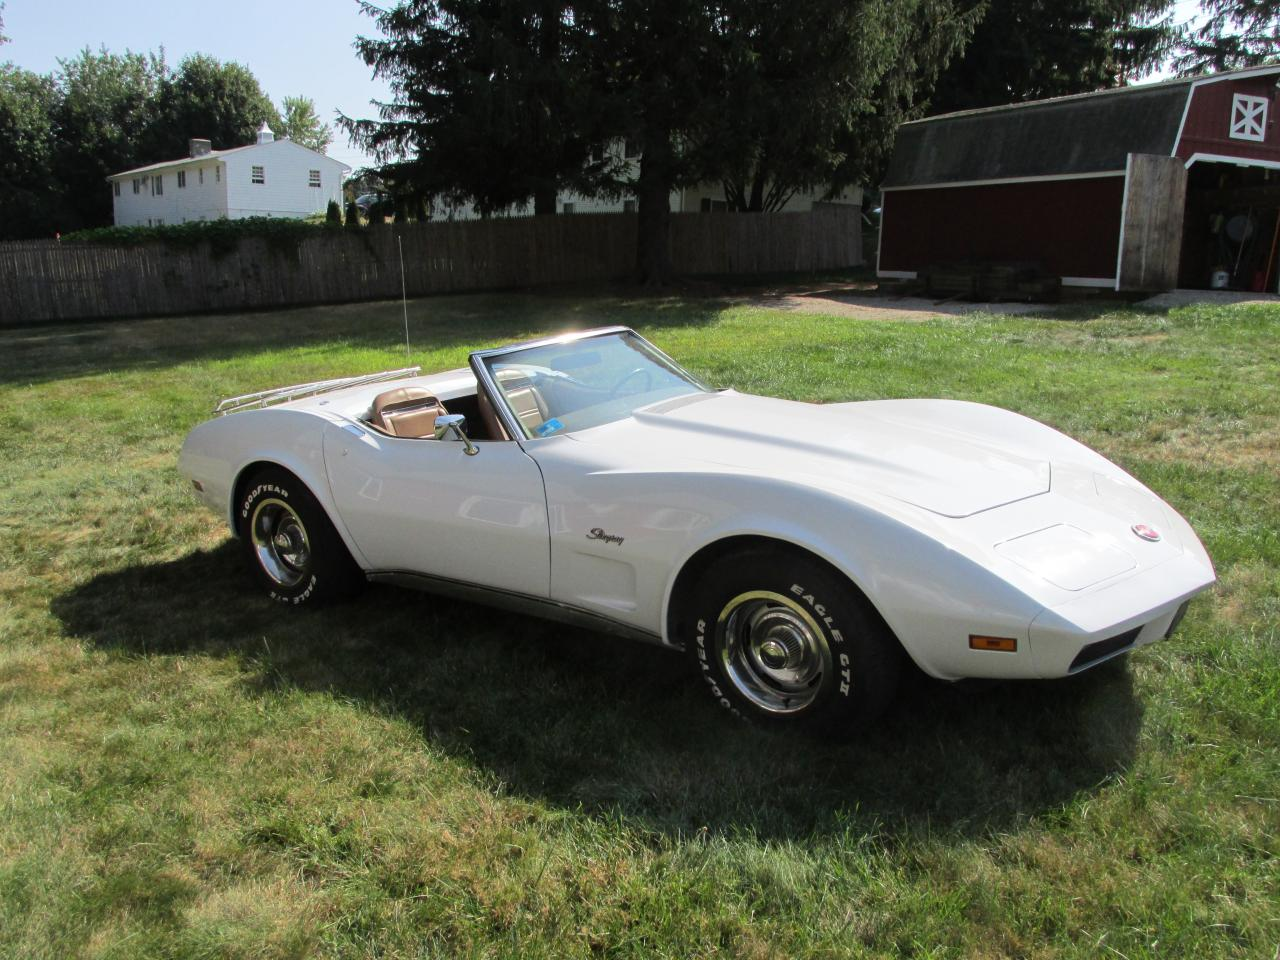 Soucy Garage - 1974 Corvette Convertible